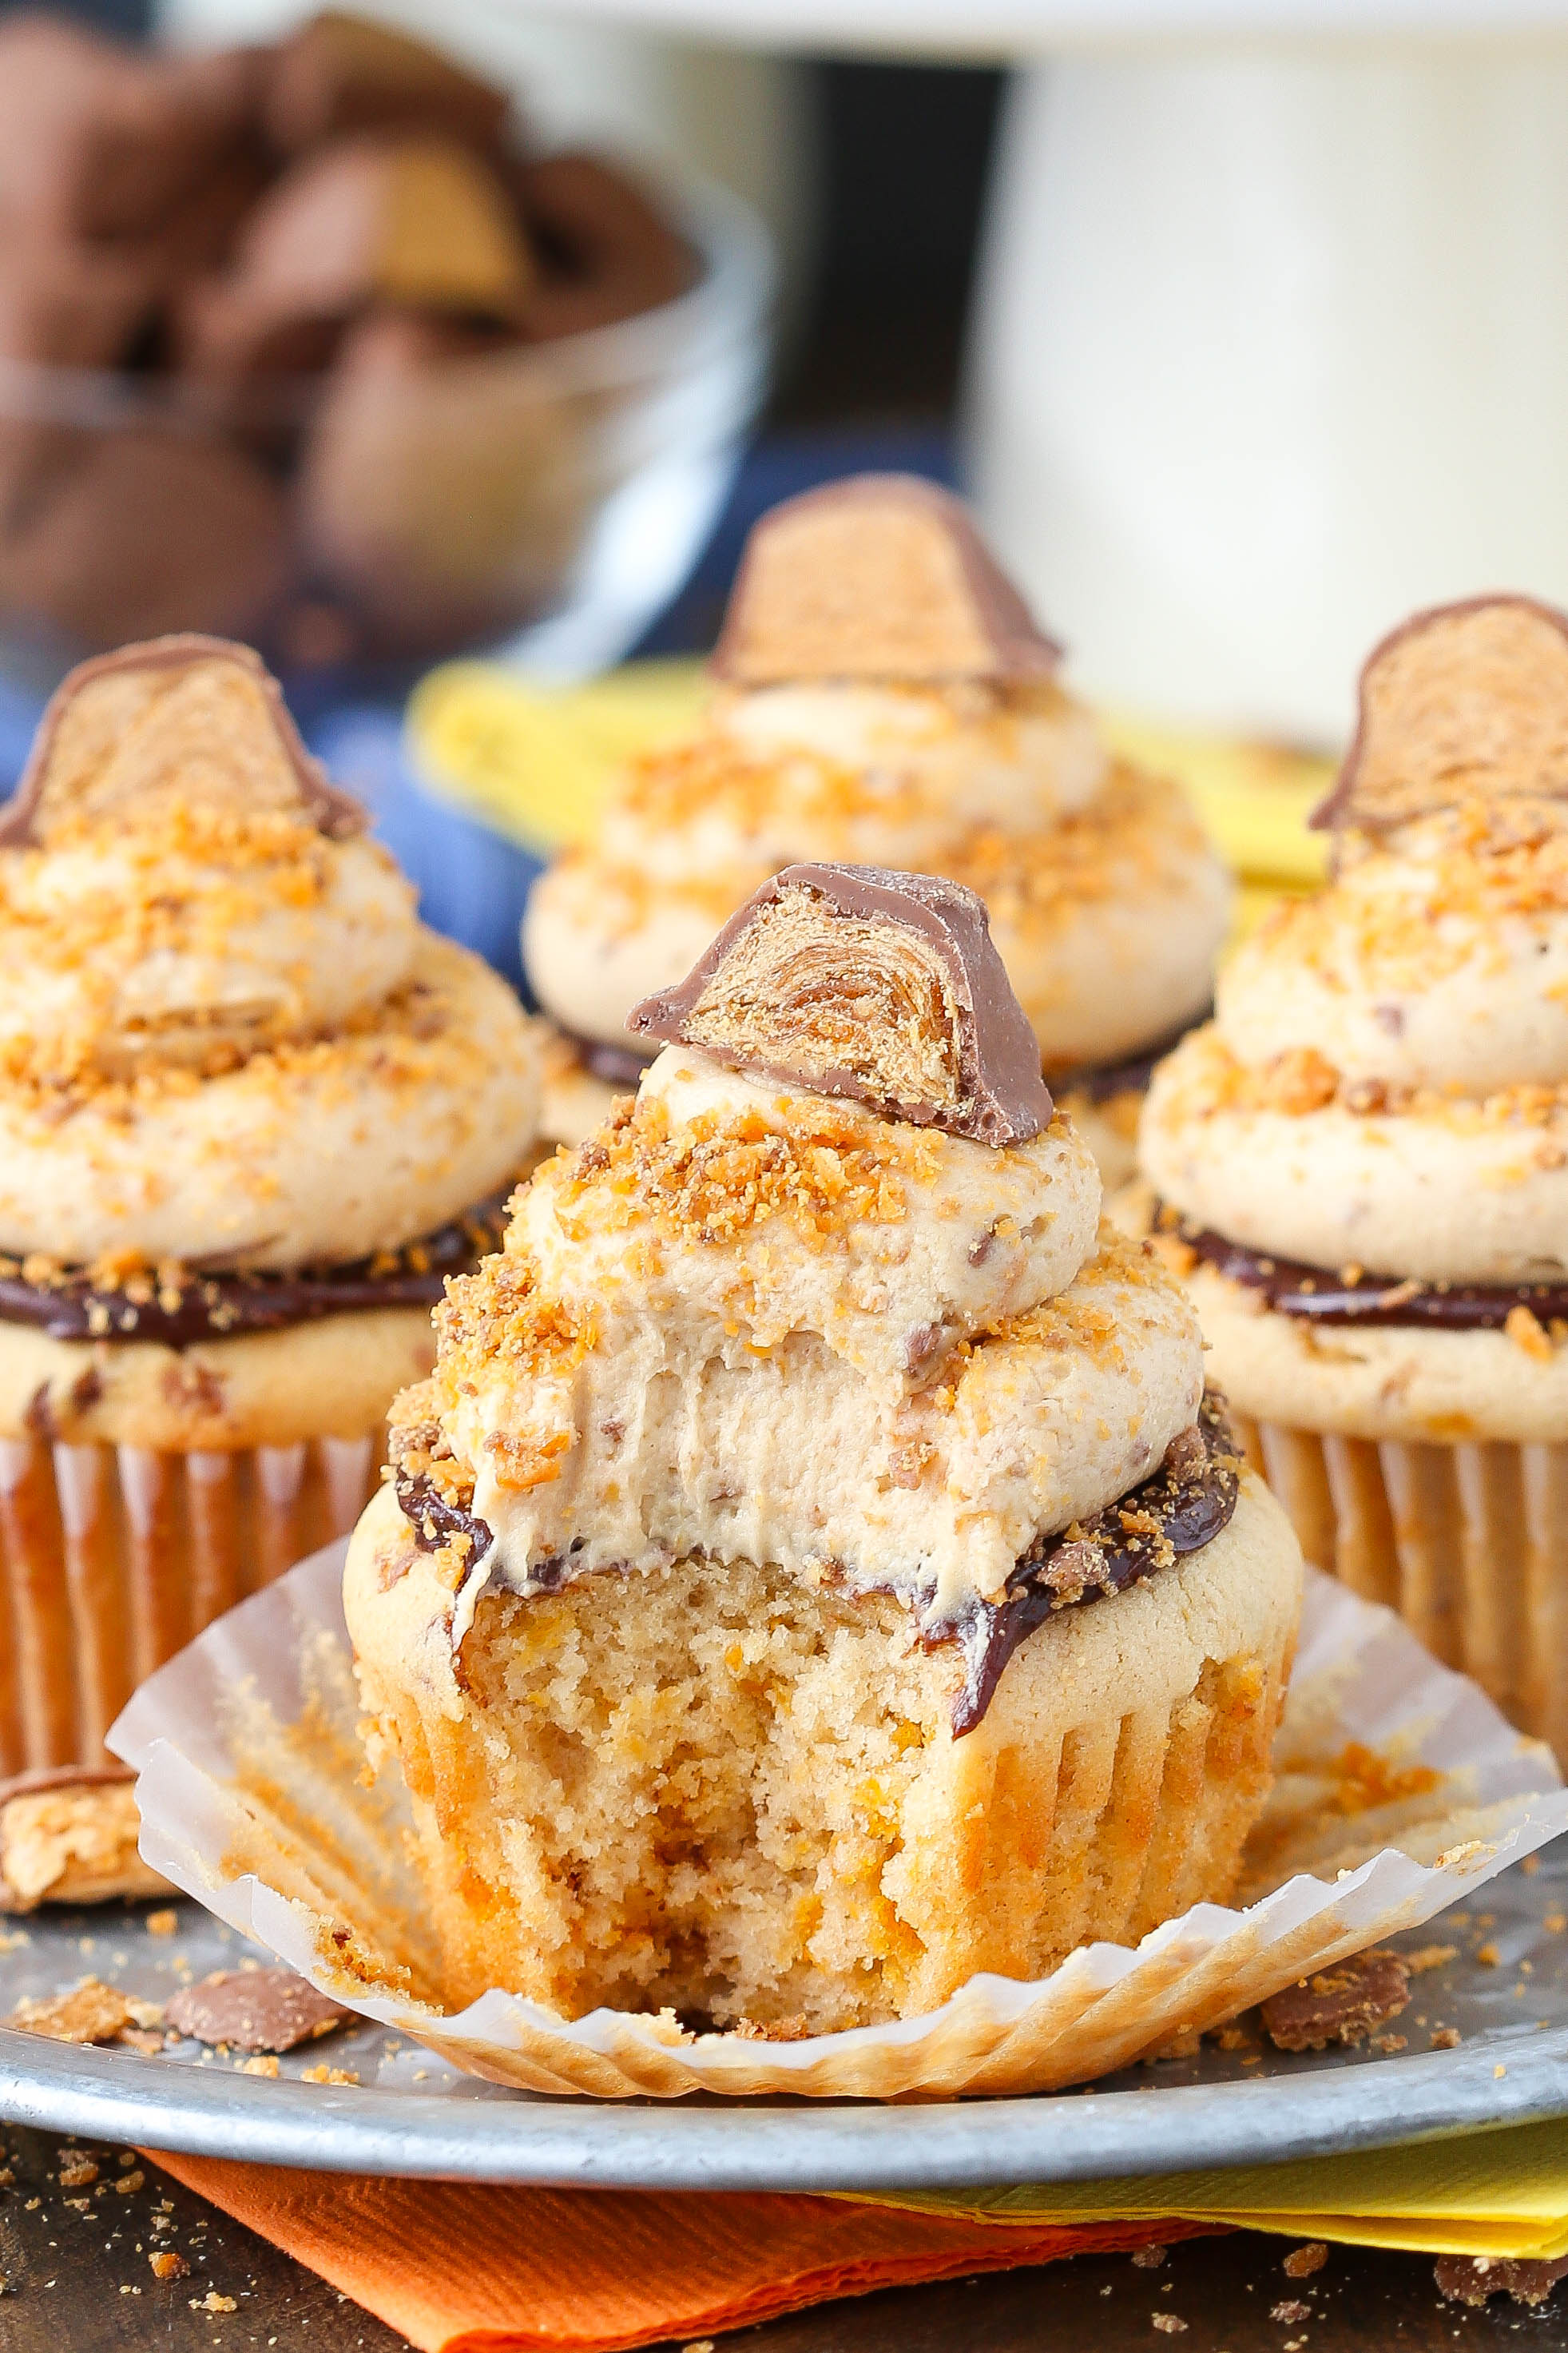 Butterfinger Cupcake with bite taken out